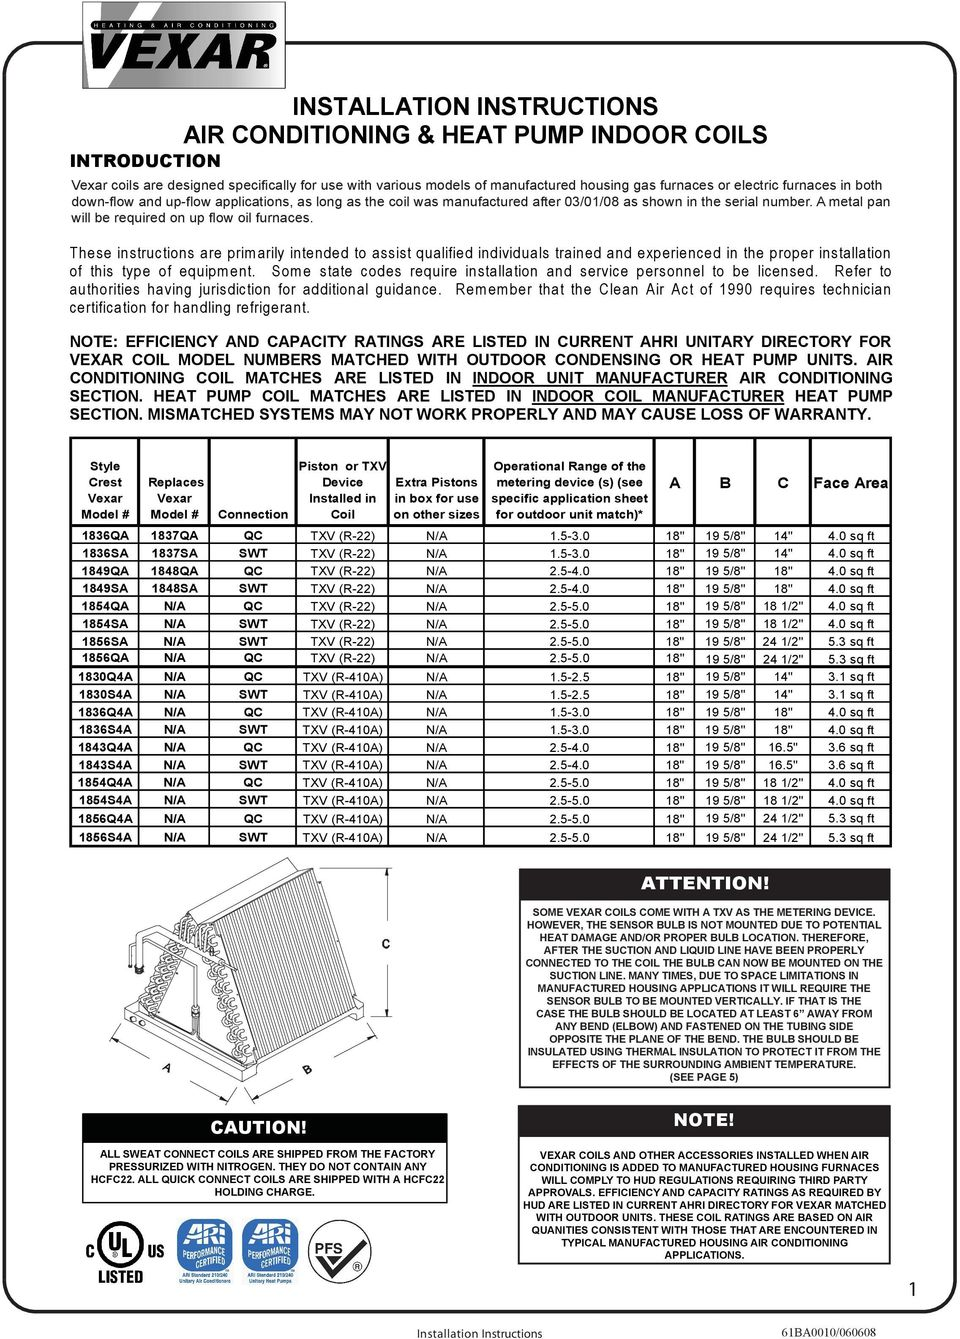 installation instructions air conditioning heat pump indoor these instructions are prim arily intended to assist qualified individuals trained and experienced in the proper